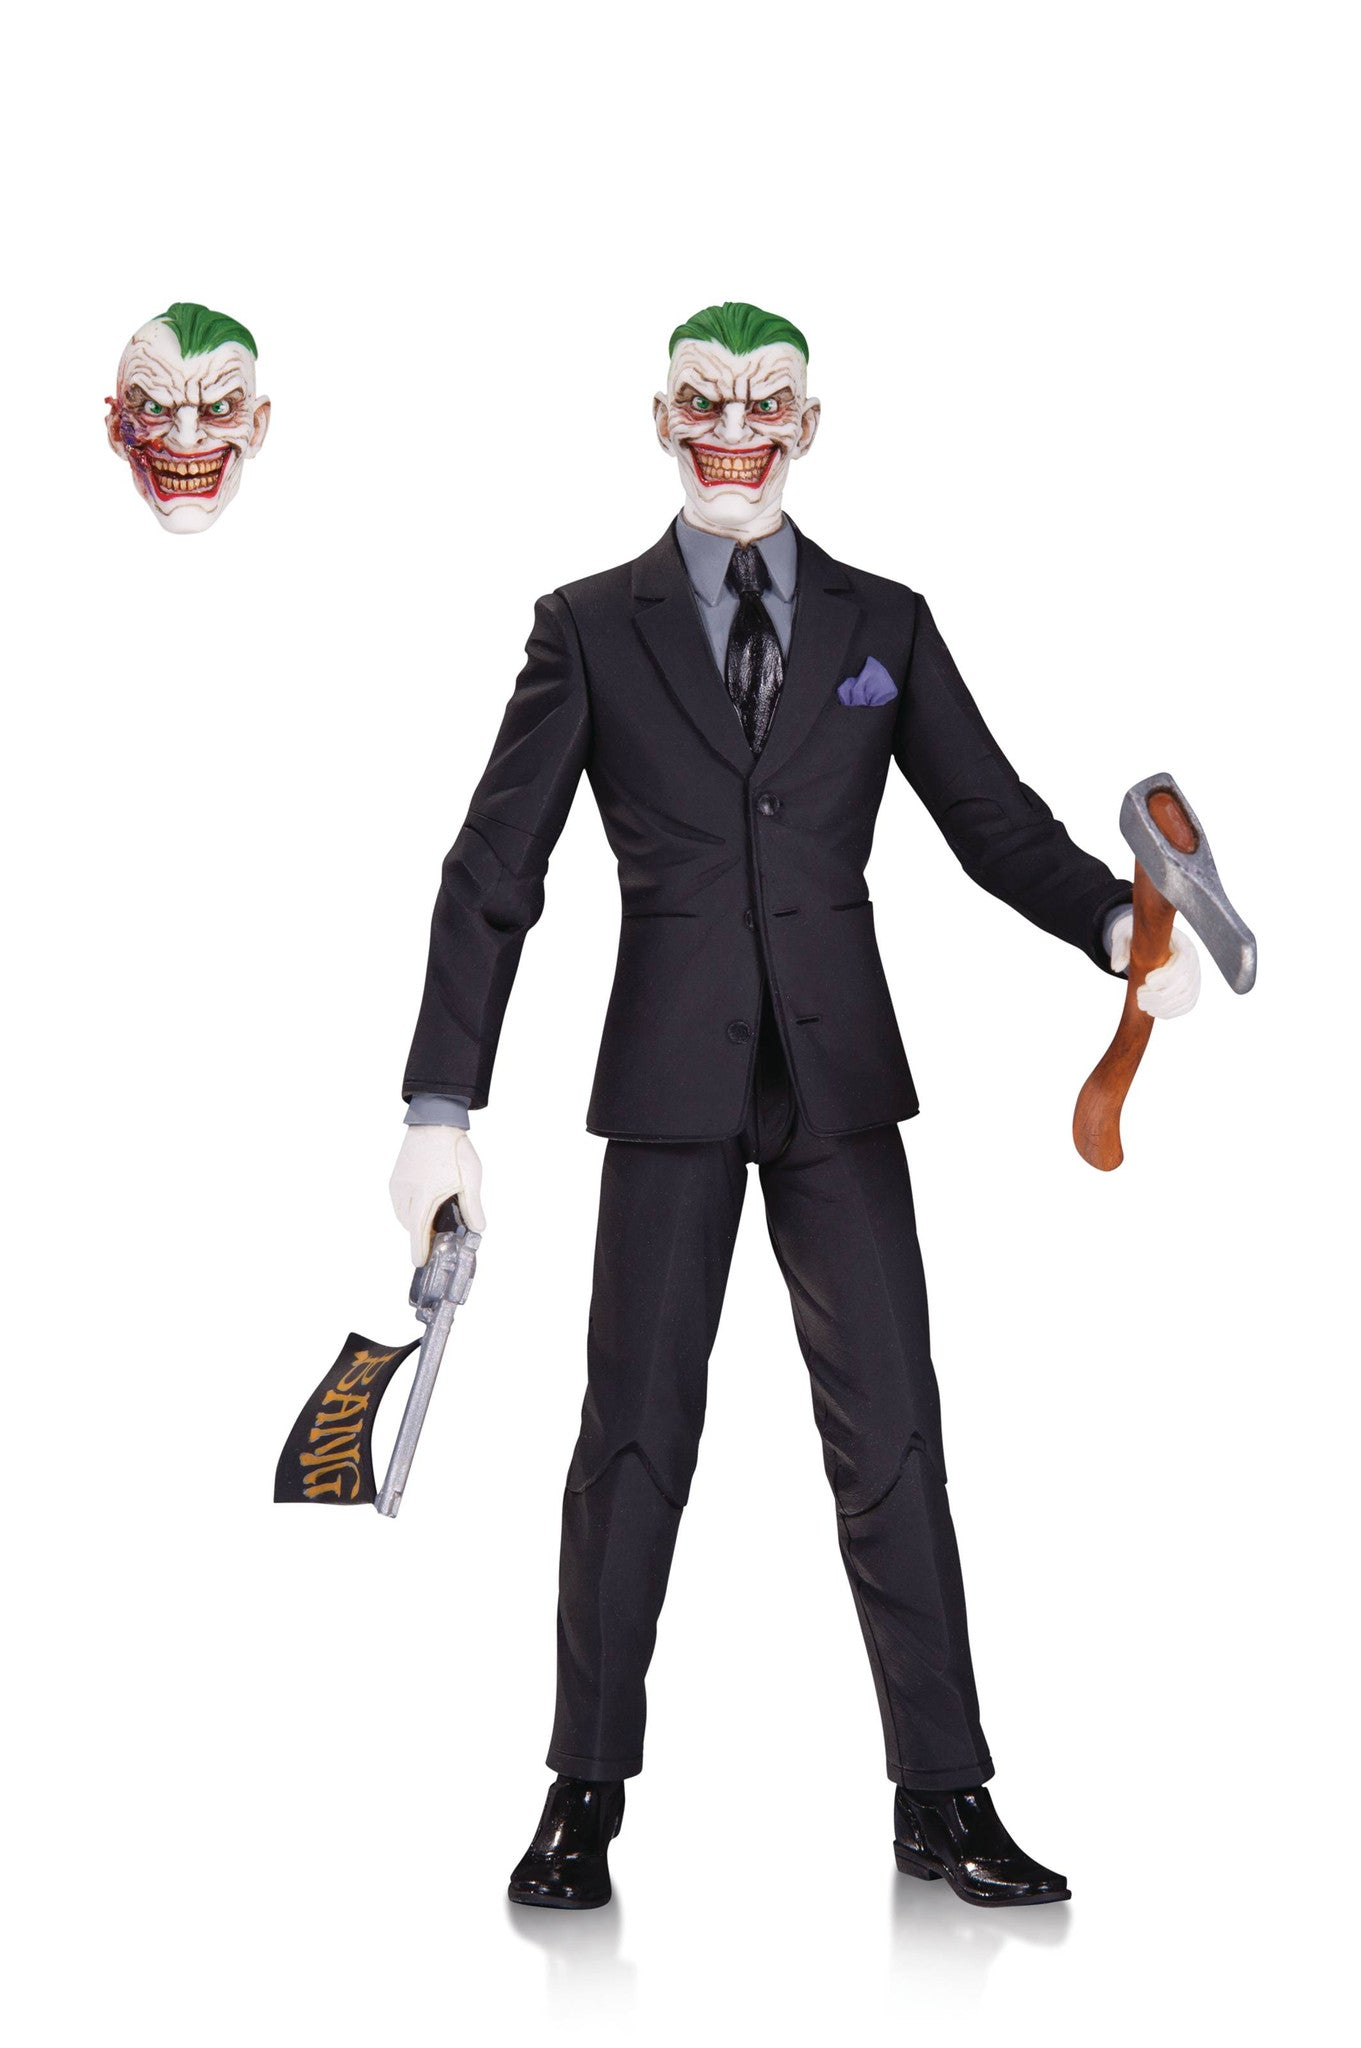 Designer Series Greg Capullo Joker Action Figure by DC Collectibles-DC Collectibles- www.superherotoystore.com-Action Figure